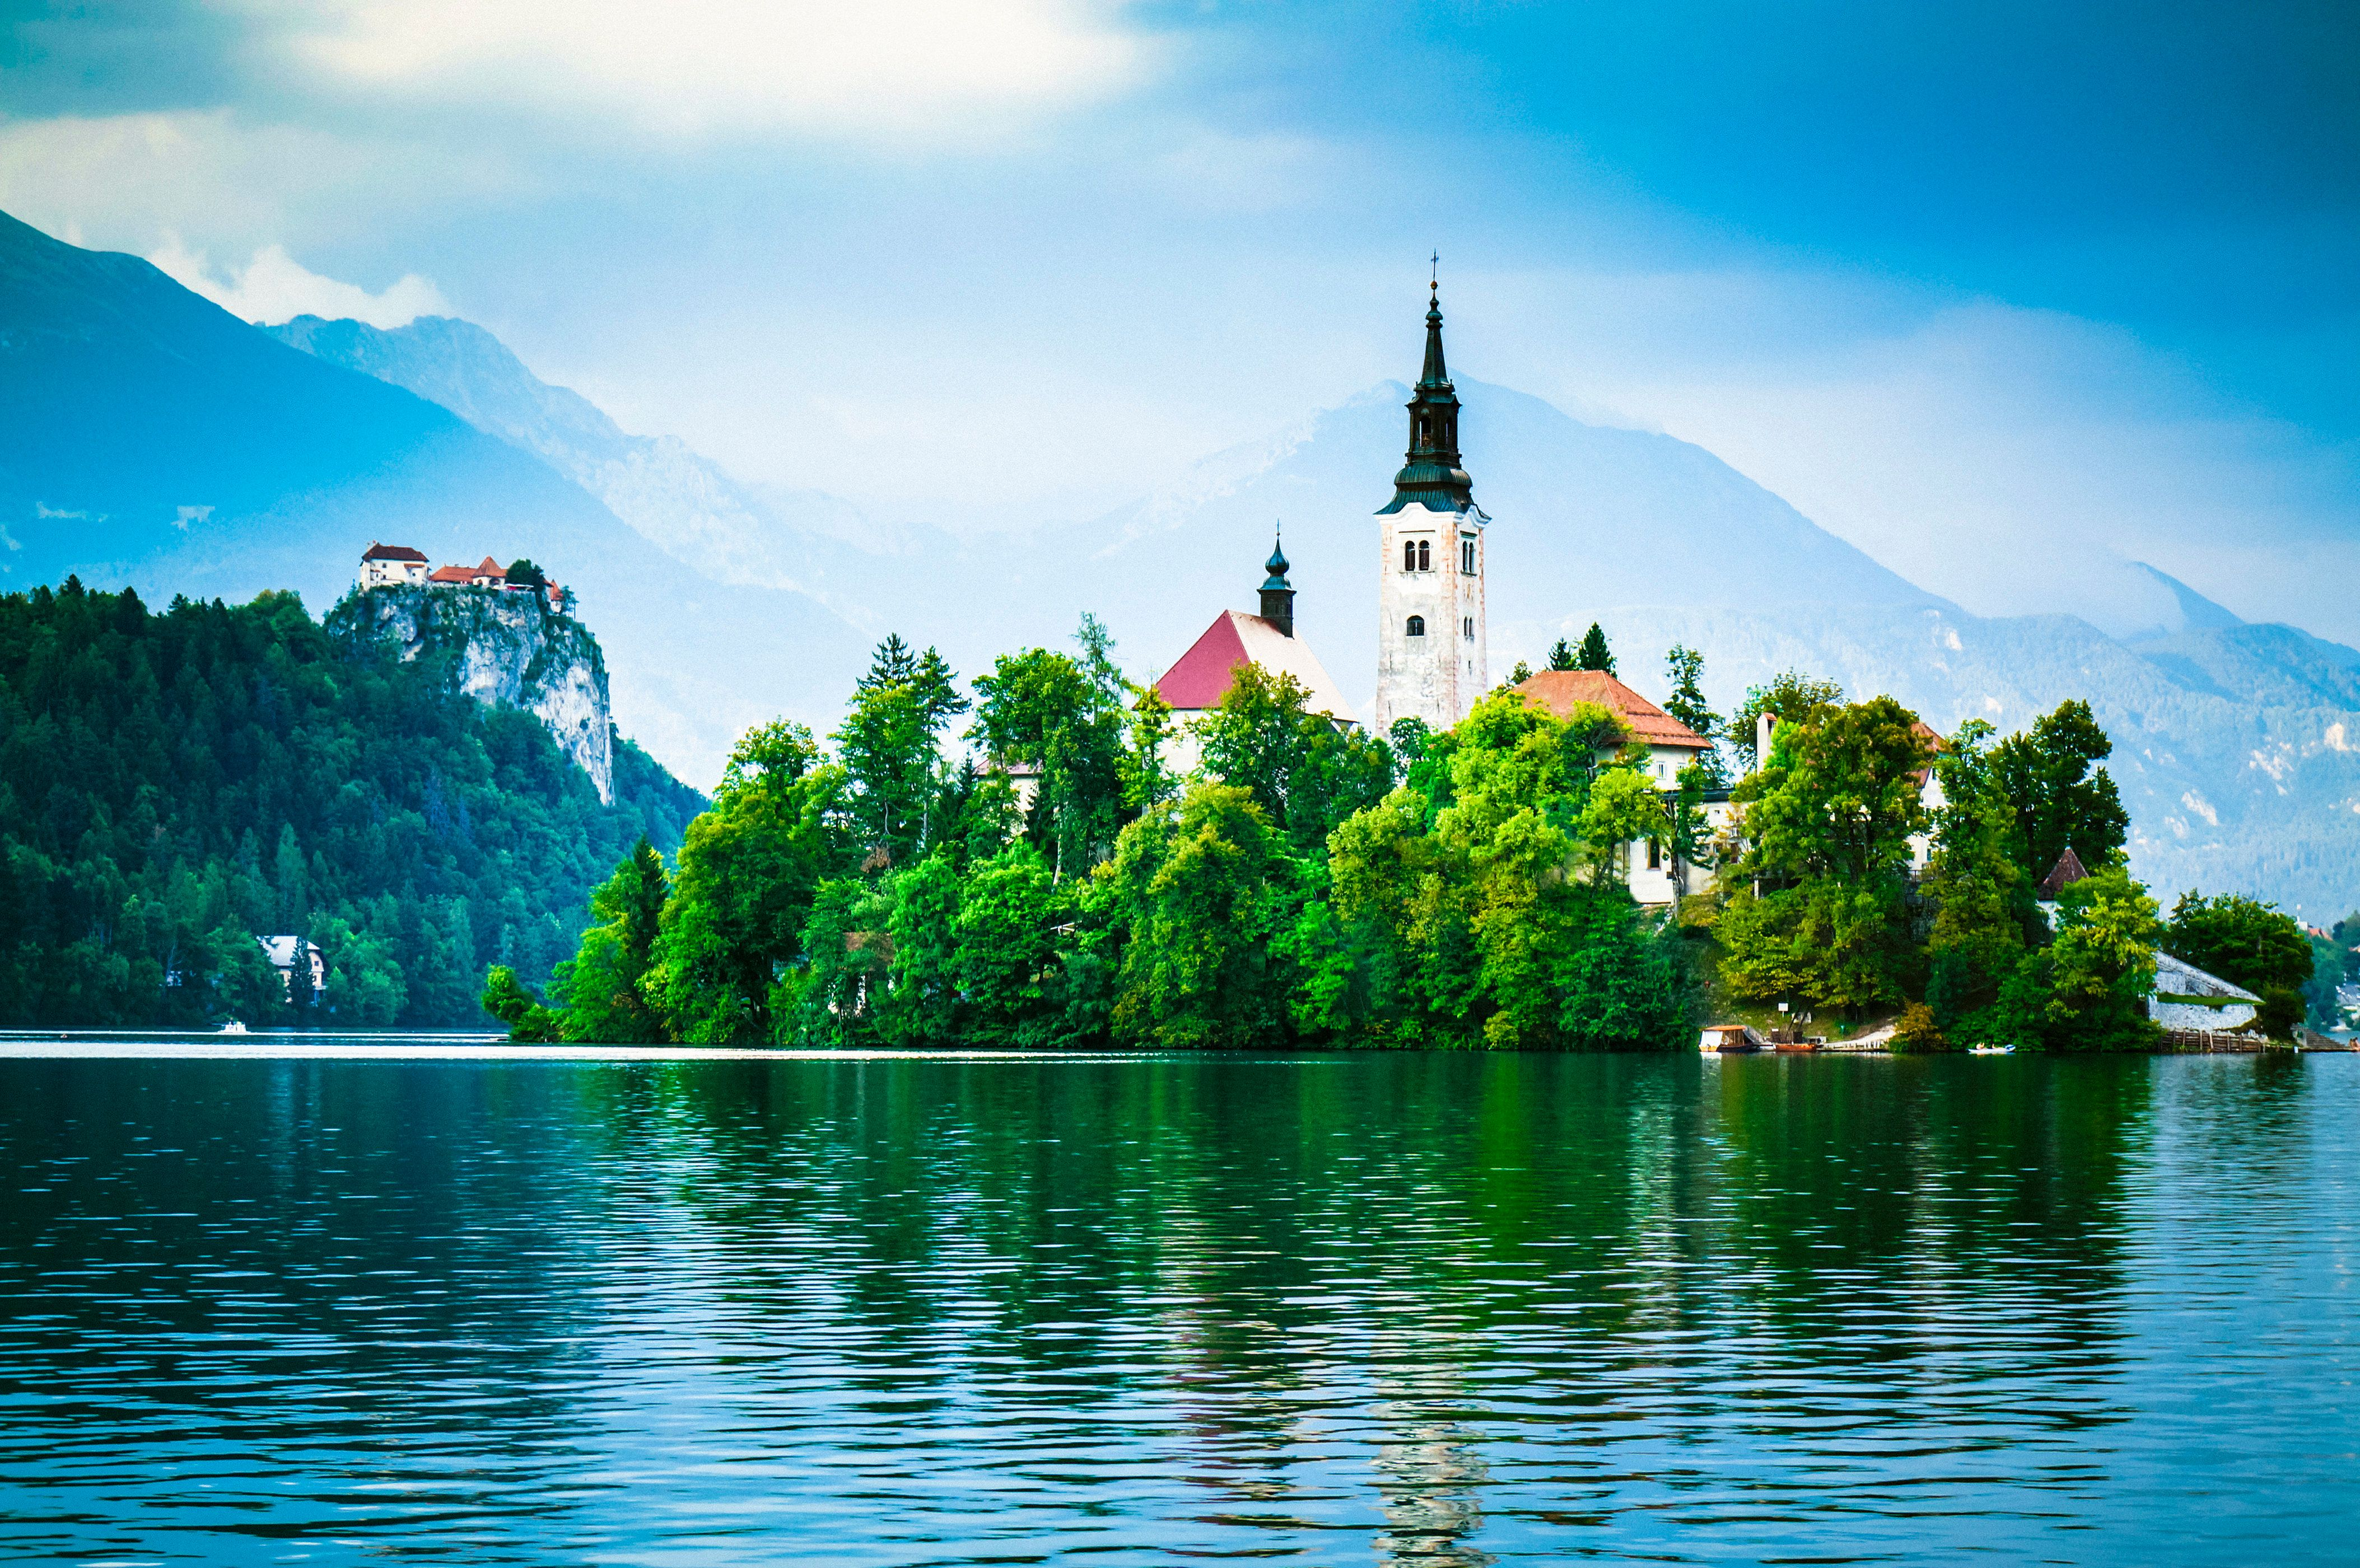 """A dramatic<a href=""""http://www.bled.si/en/what-to-see/natural-sights/the-bled-island"""" target=""""_blank"""">99-step staircase<"""